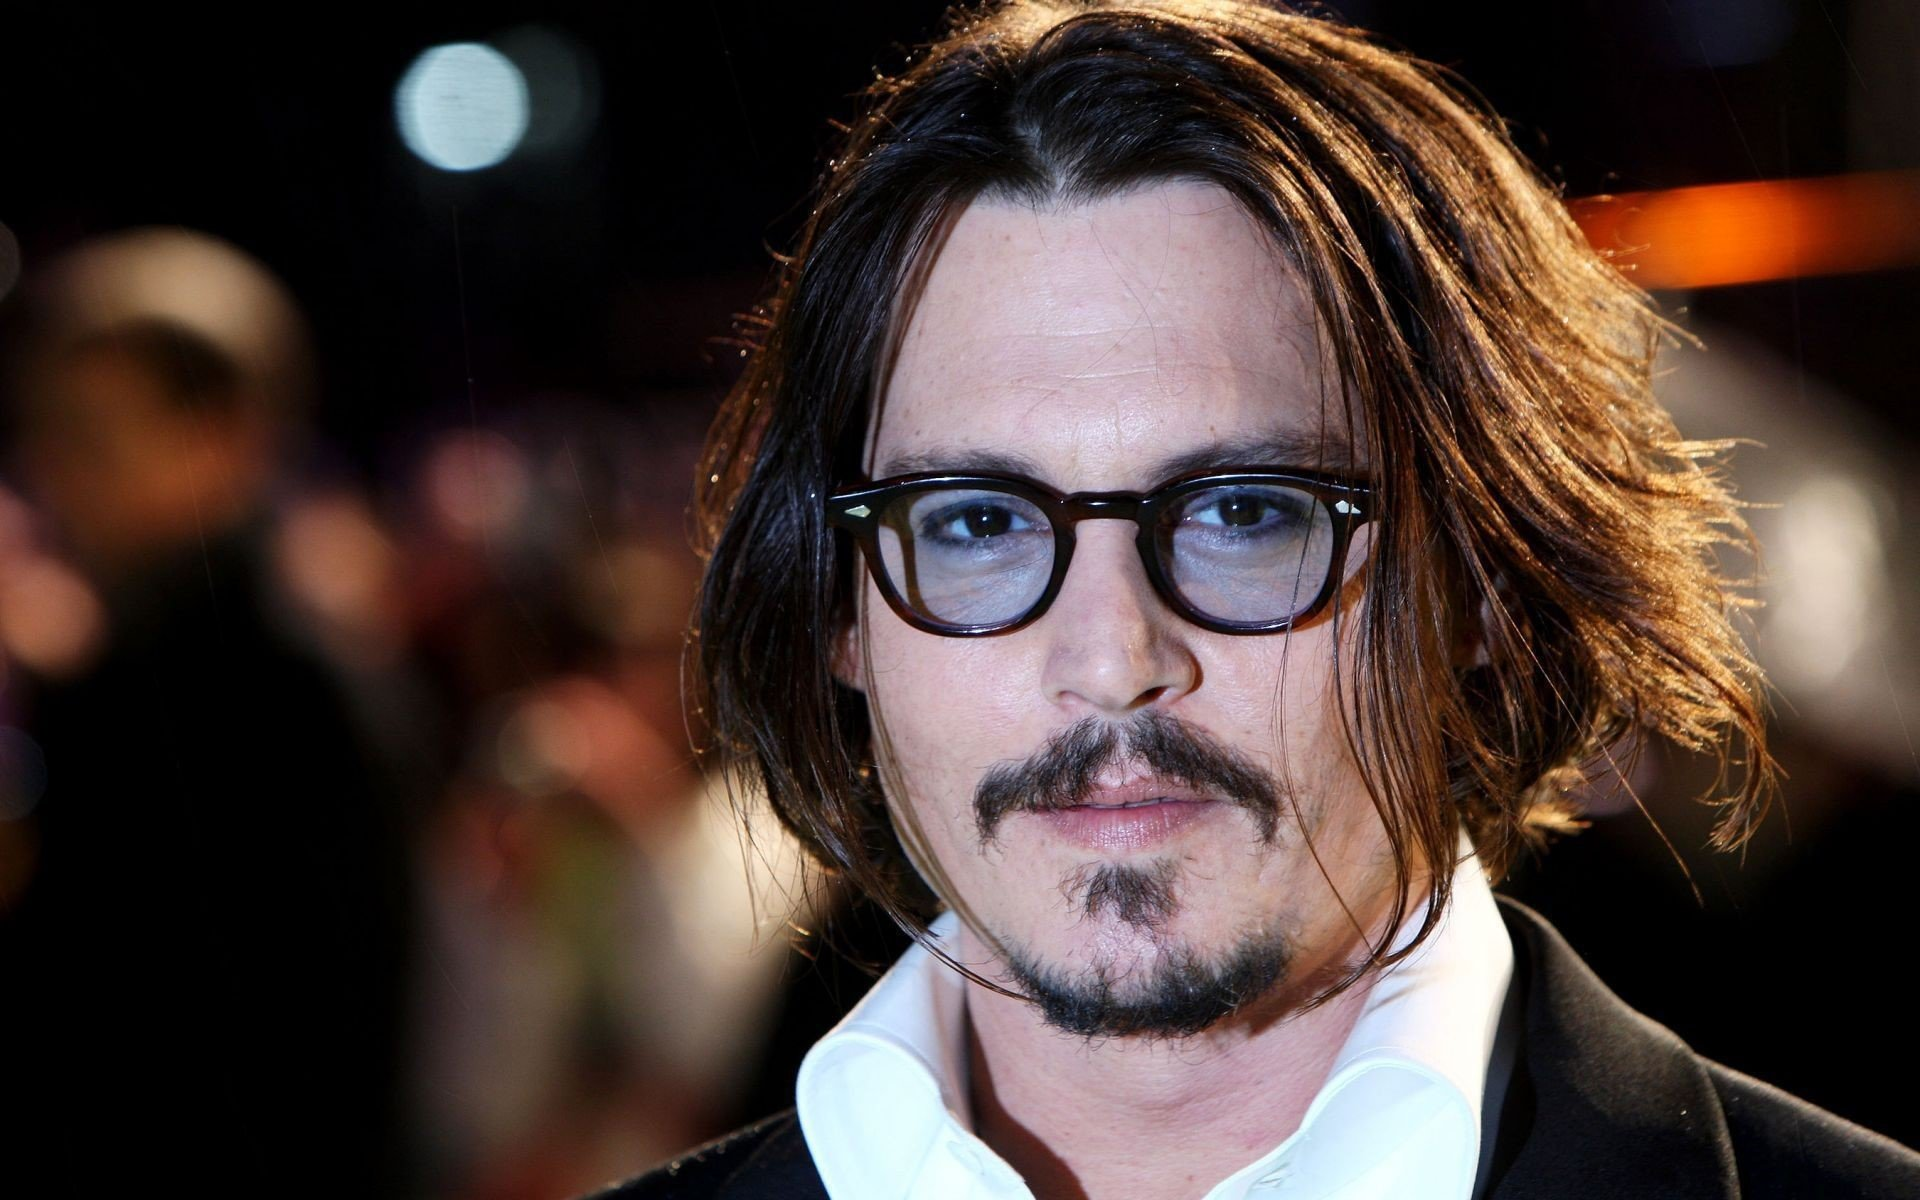 Johnny Depp Wallpapers for PC